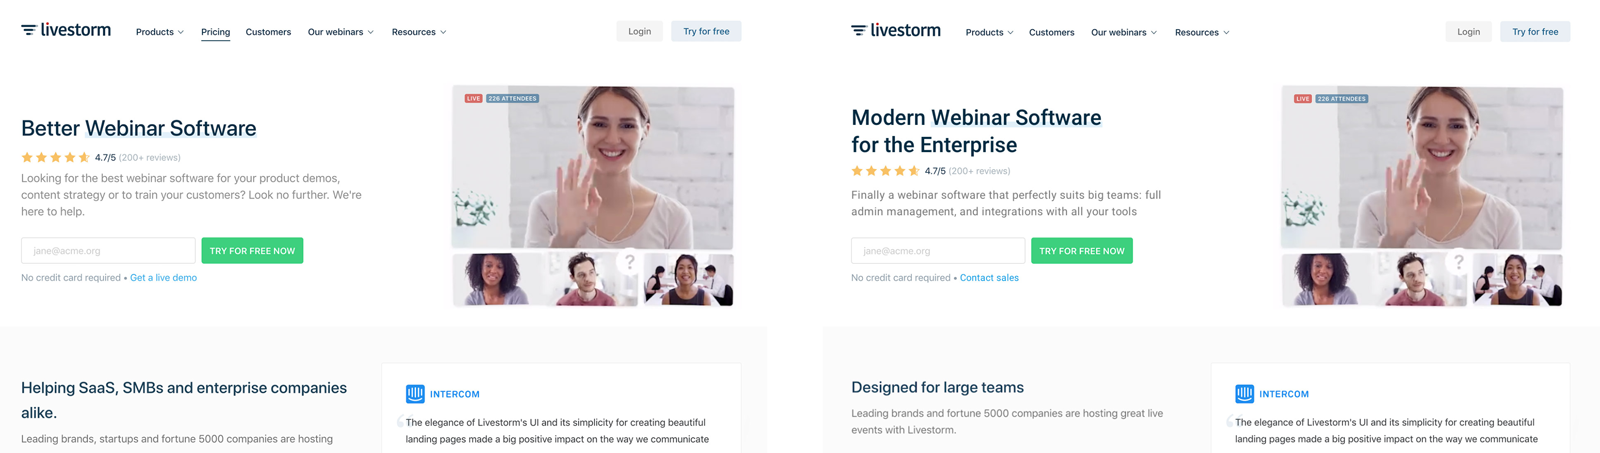 two versions of Livestorm homepage